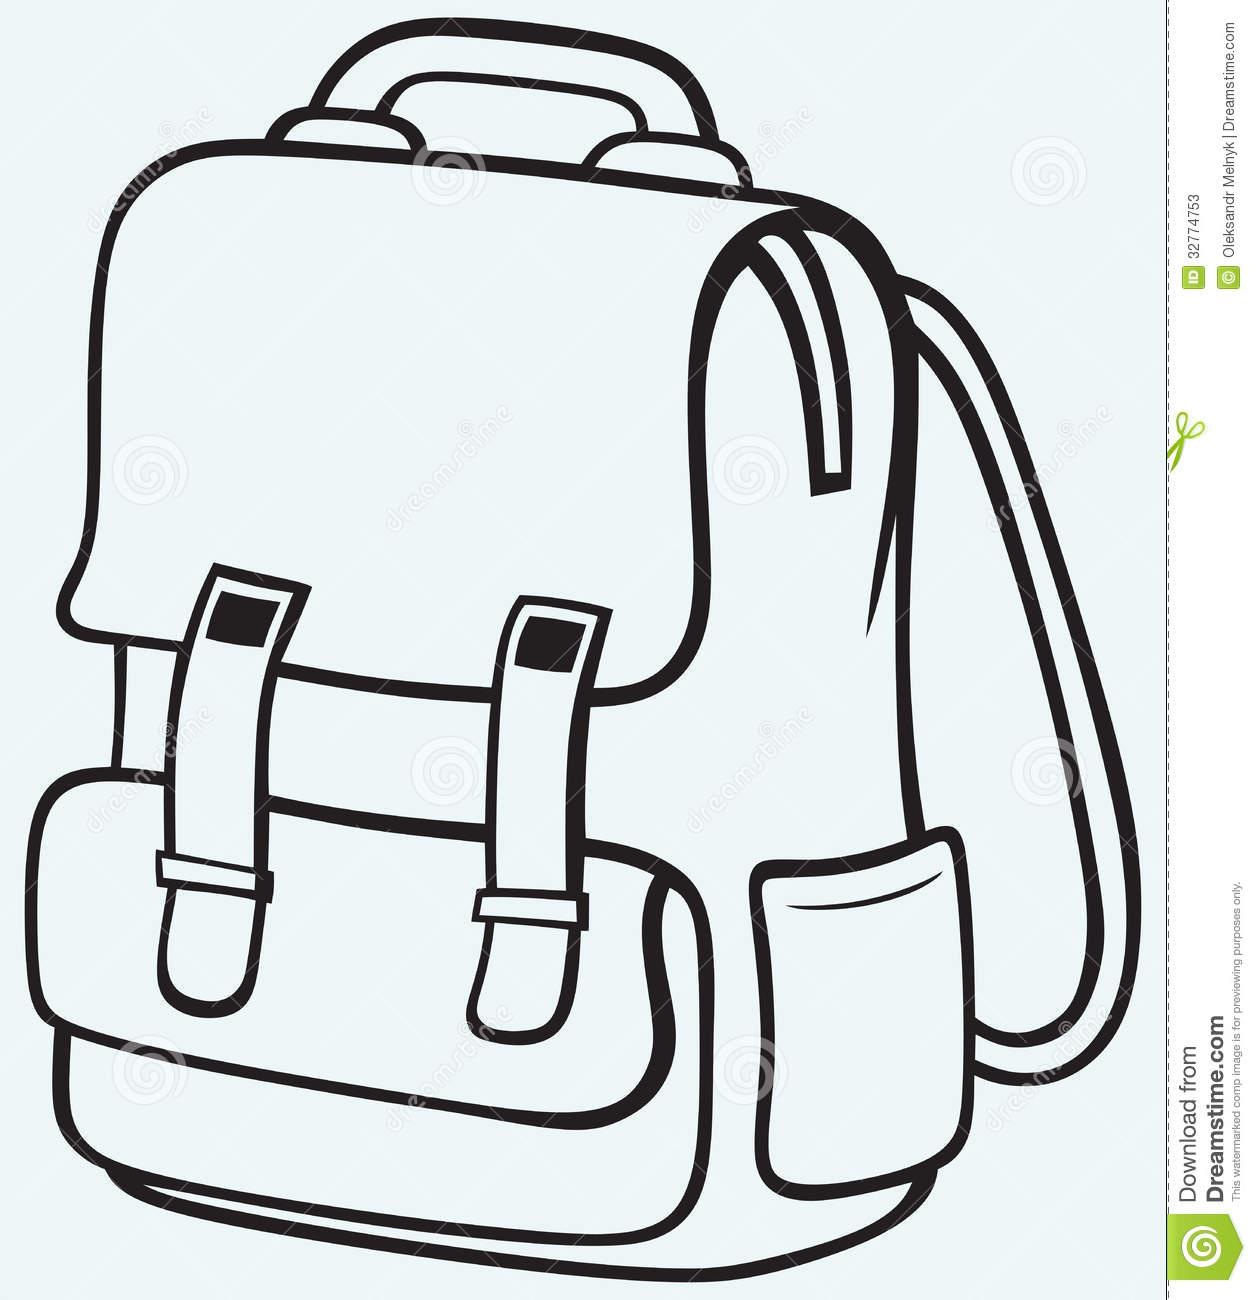 School Bag Stock Photos - Image: 32774753